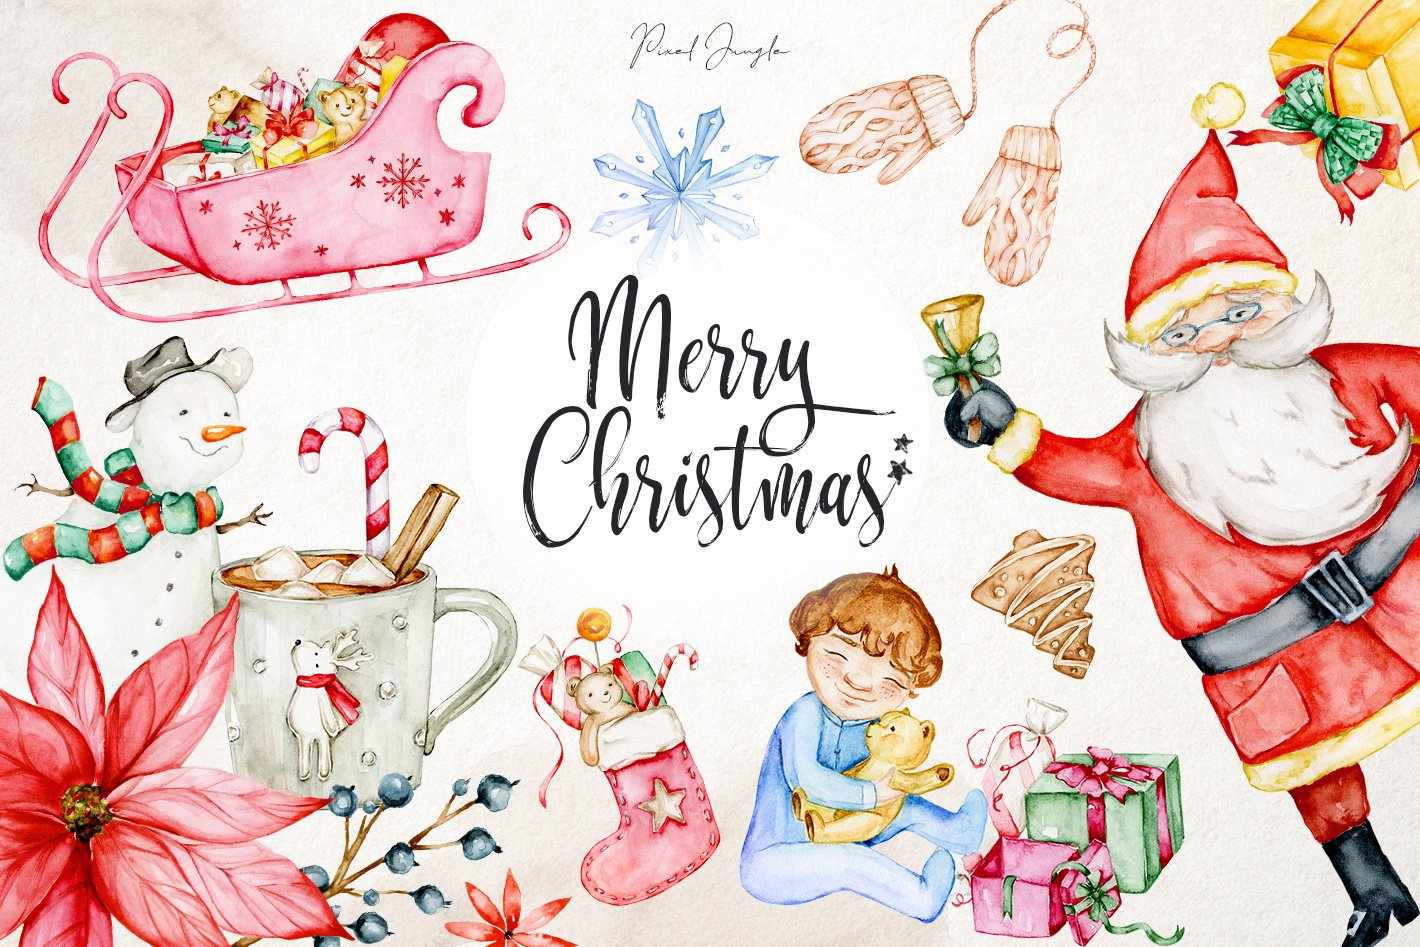 Christmas Clipart Png.Christmas Watercolor Clipart Png Graphic Objects